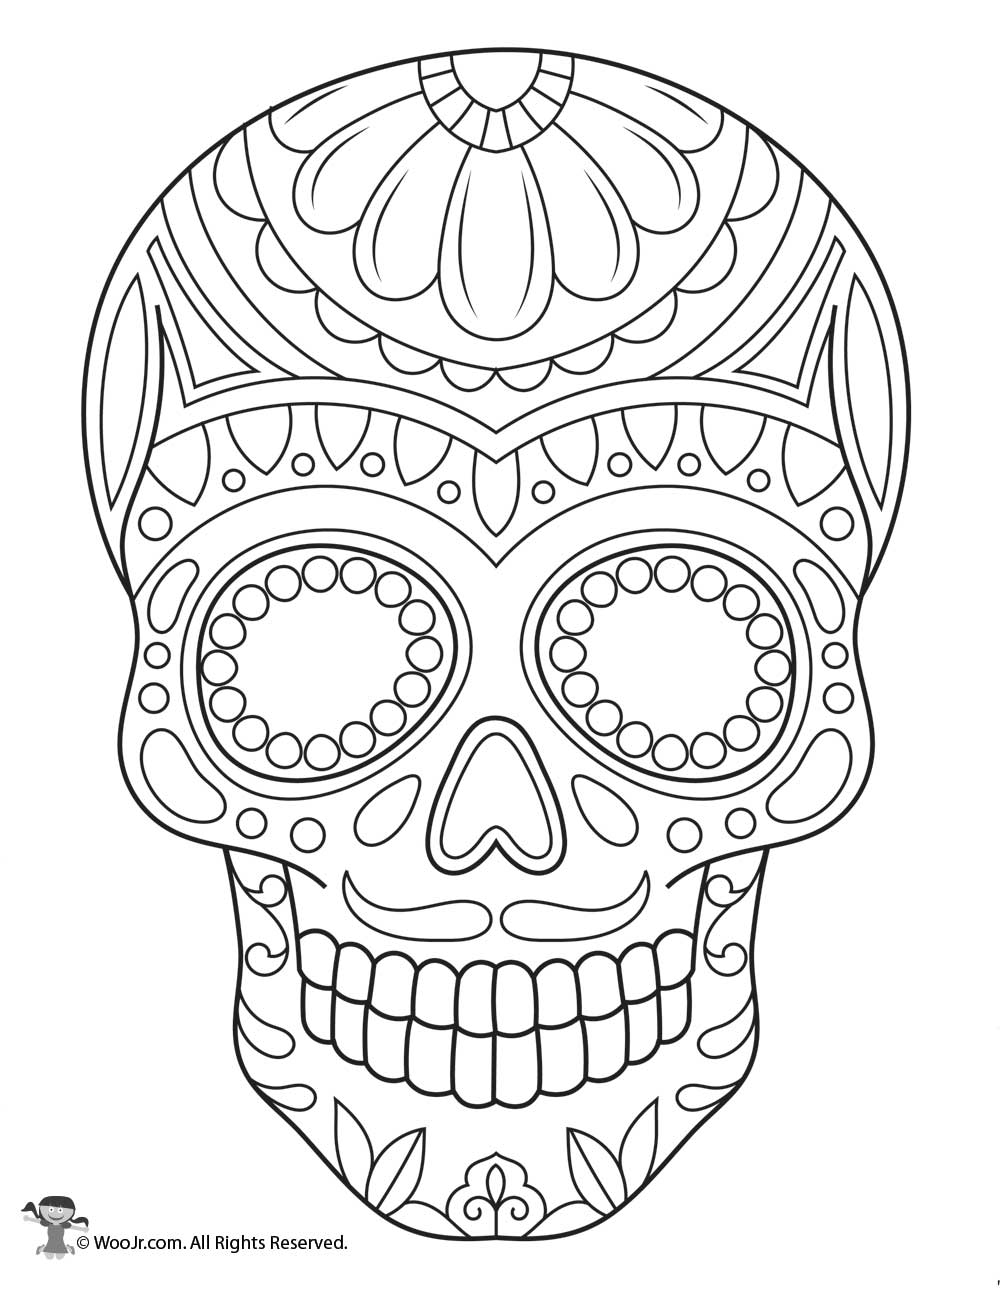 Sugar Skull Coloring Page Woo Jr Kids Activities